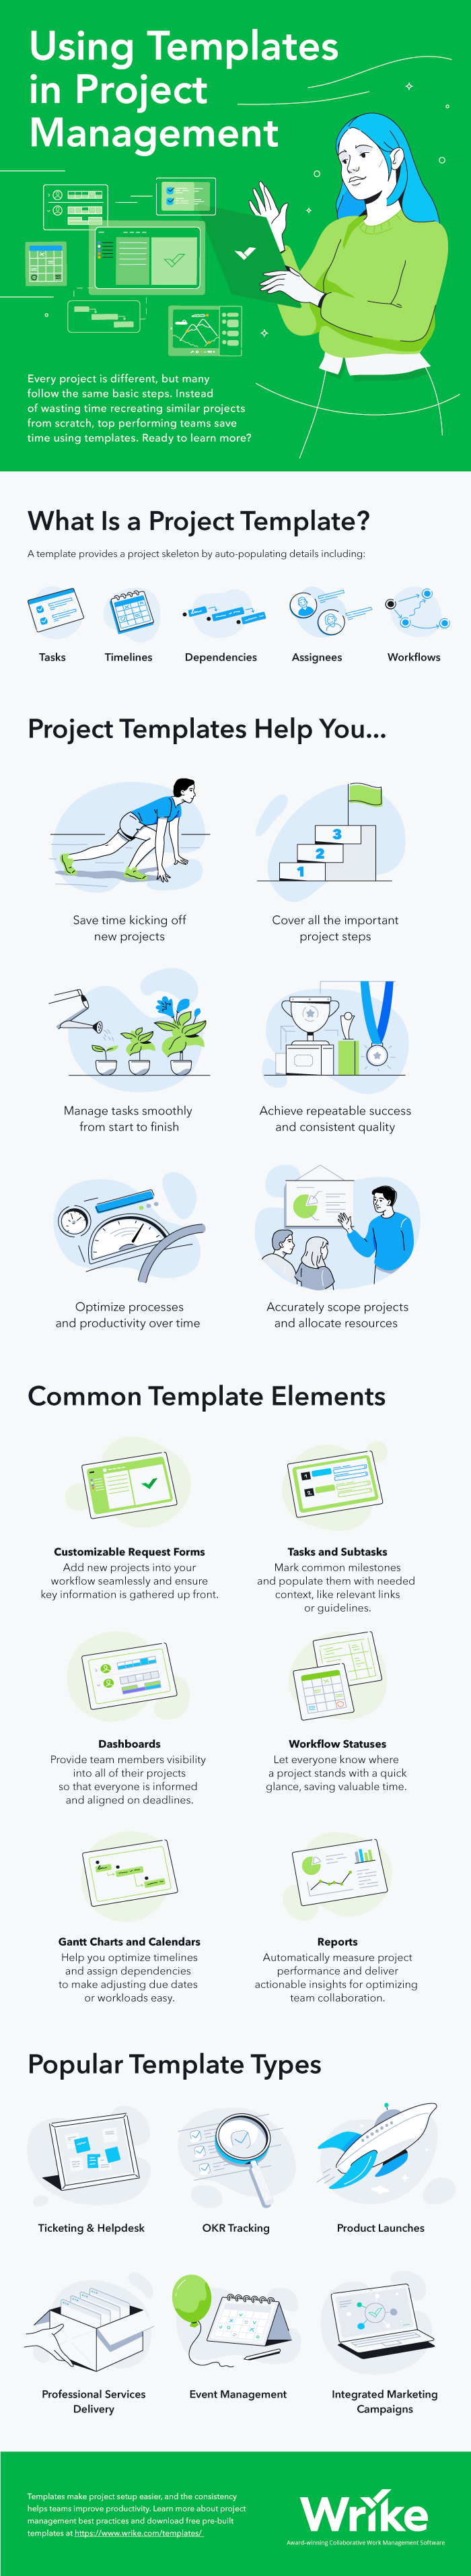 Using Templates in Project Management